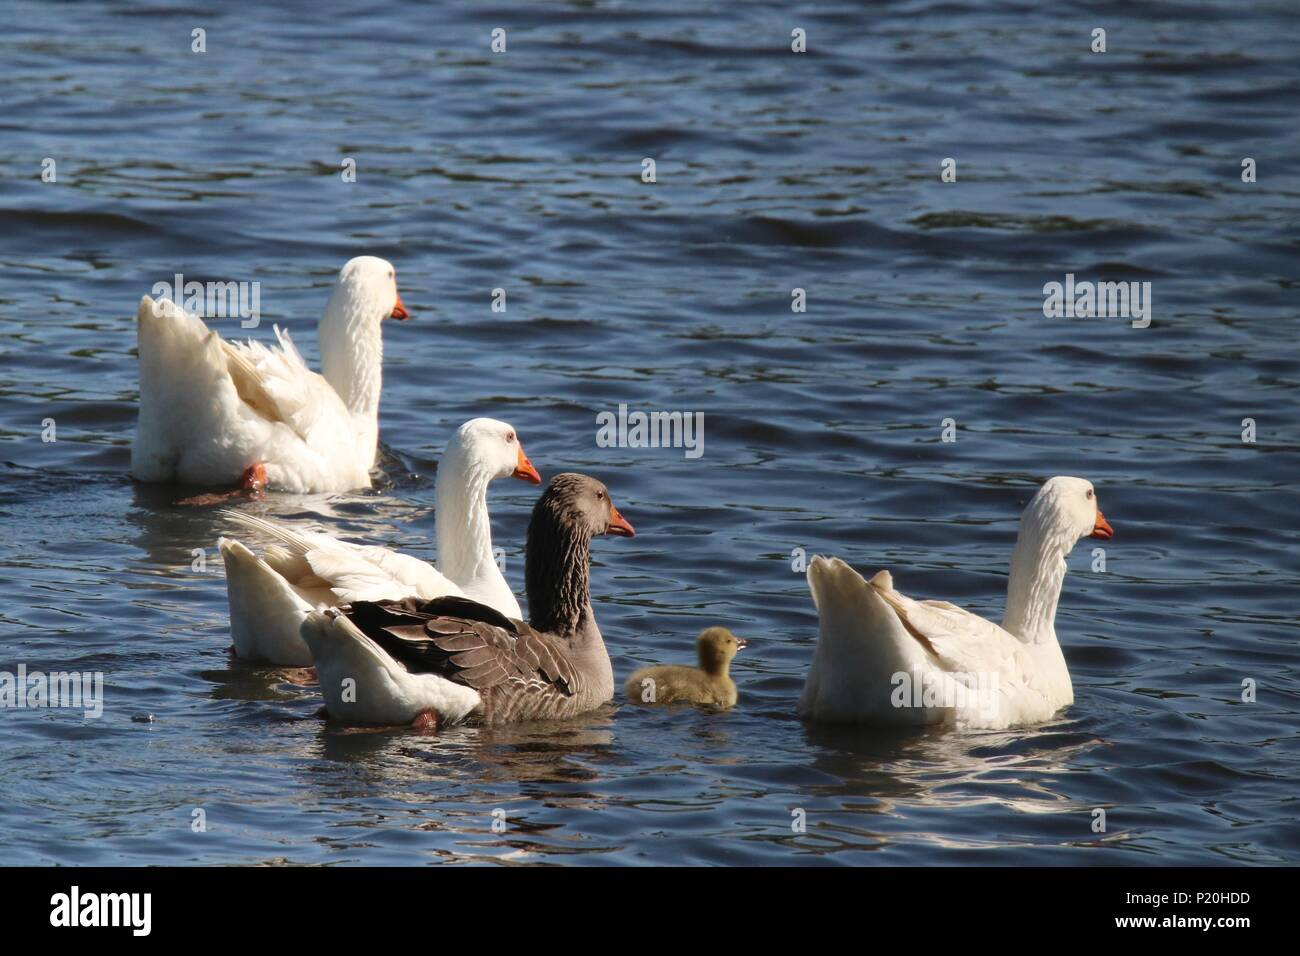 A flock of geese swimming on a pond together and protecting a little gosling - Stock Image